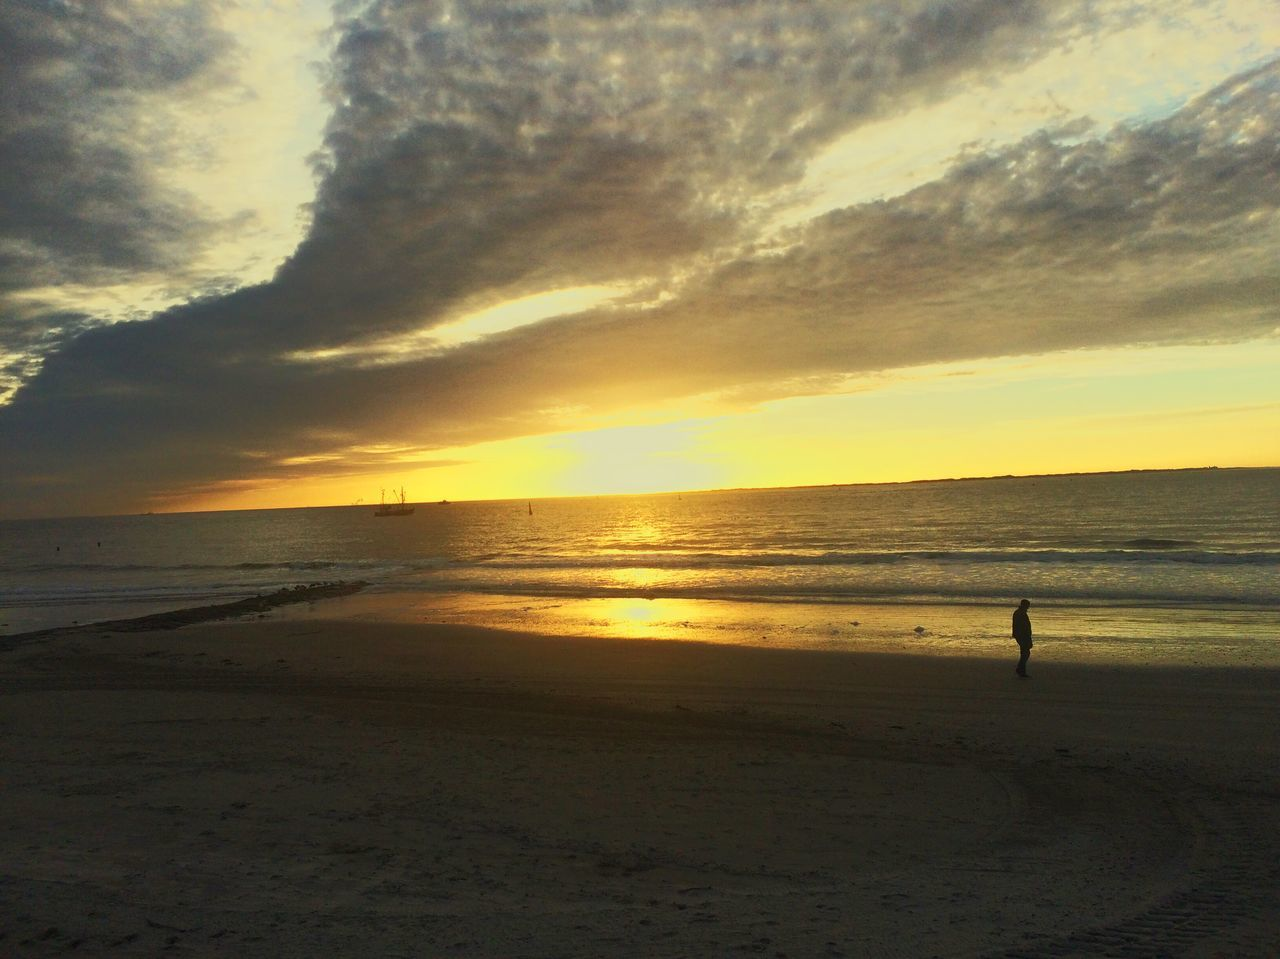 Sunset Water Sky Sand Enjoying Life Beauty In Nature Place Of Heart